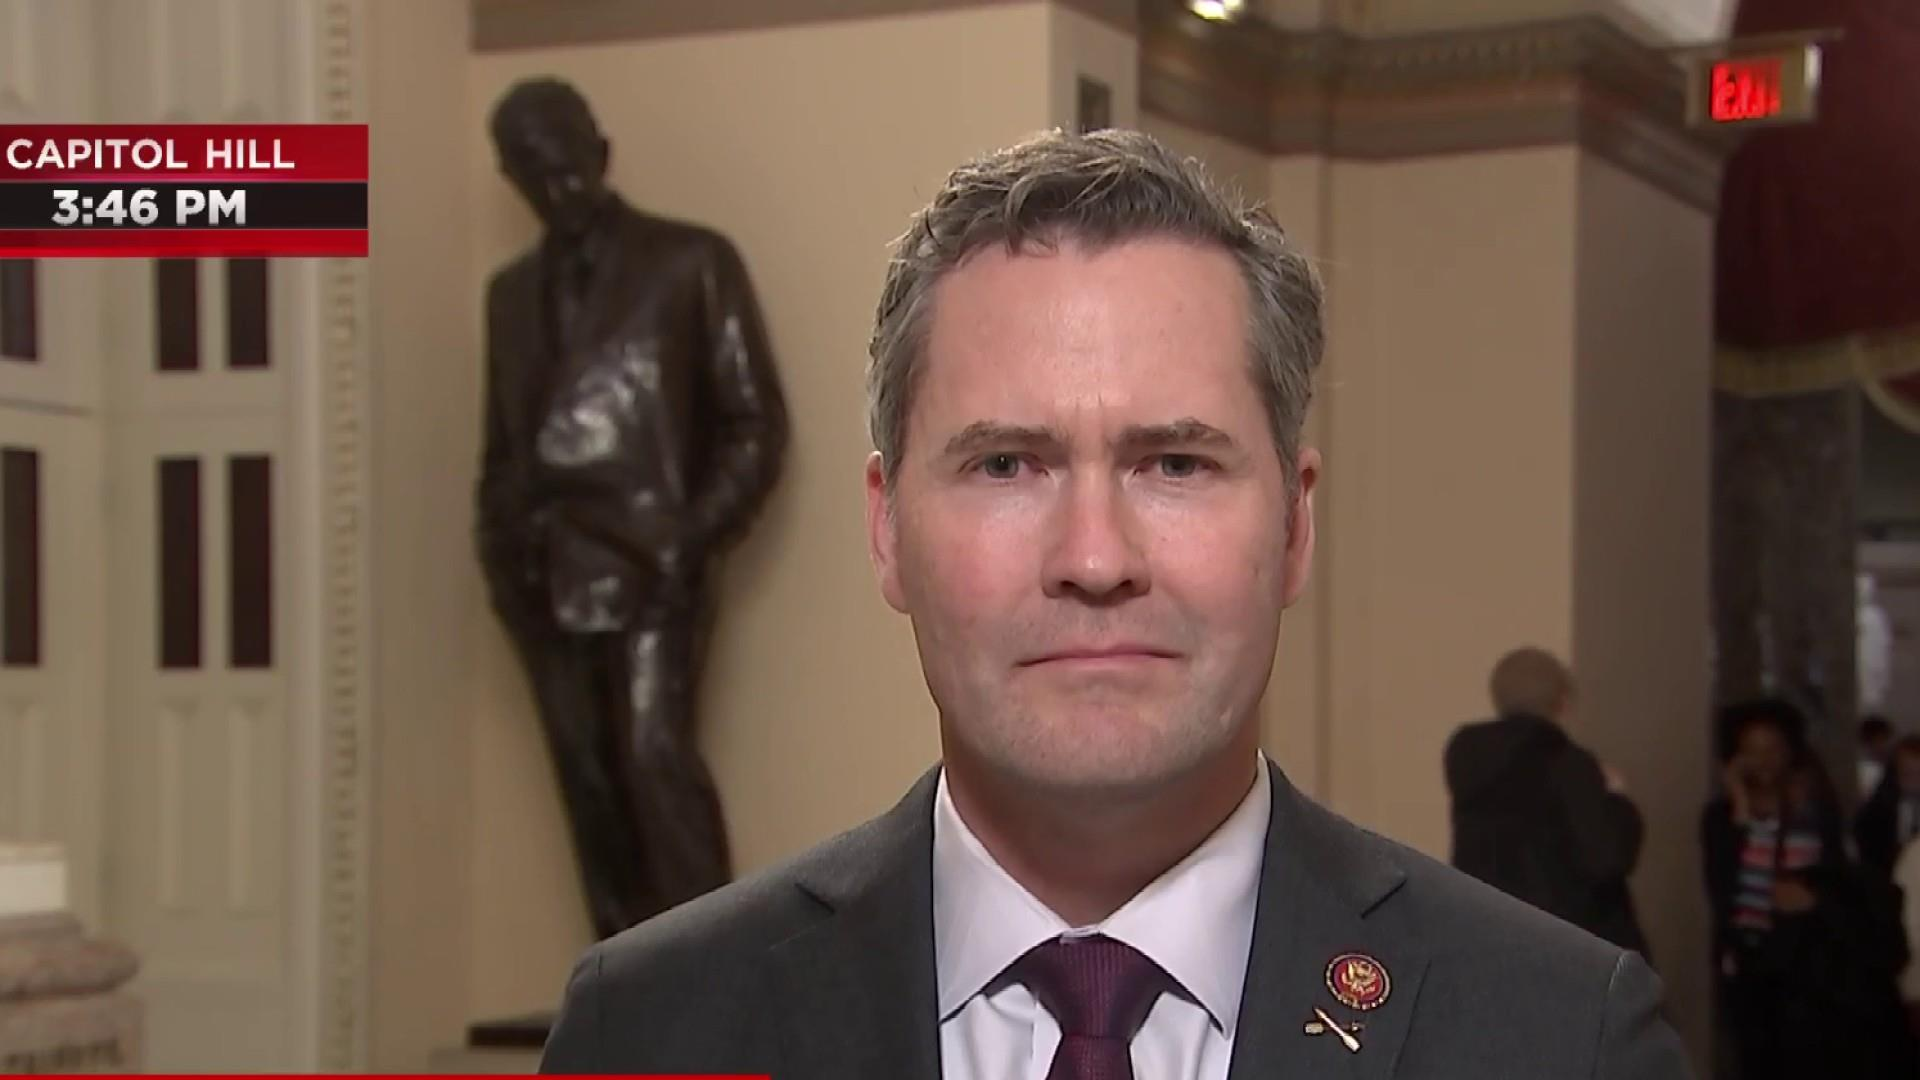 GOP Rep. Waltz: You can't reach a compromise if you don't talk